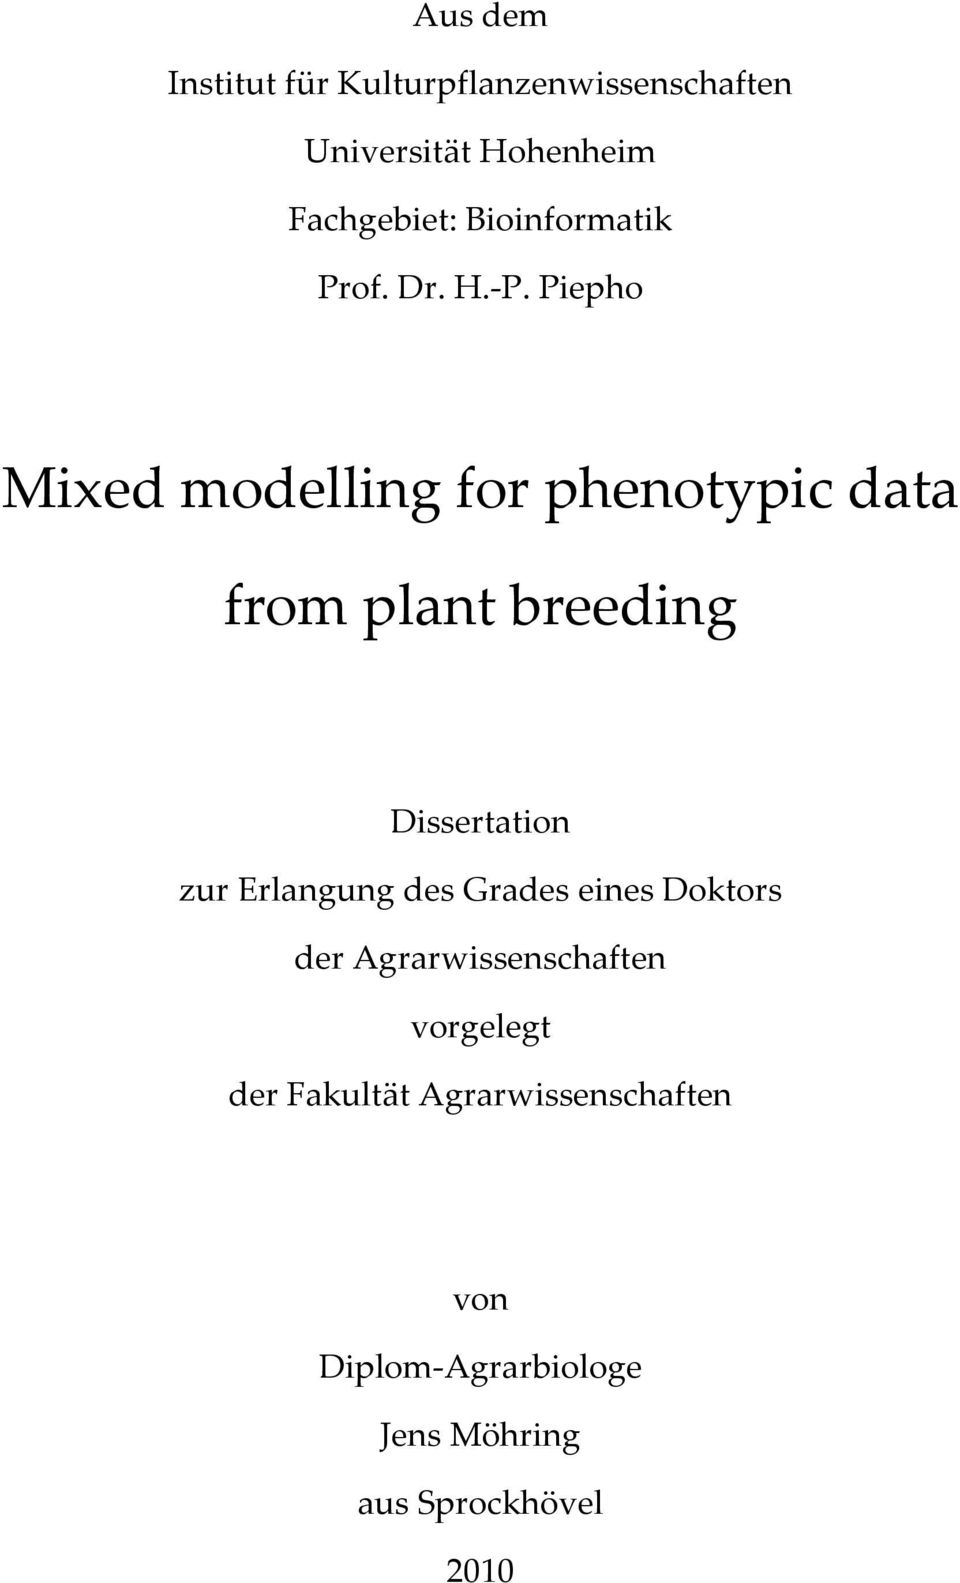 an analysis of plant breeding Statistical methods involving relationships between populations and samples collection, organization, and analysis of data and techniques in testing hypotheses with an introduction to regression, correlation, and analysis of variance limited to the completely randomized design and the randomized complete-block design.